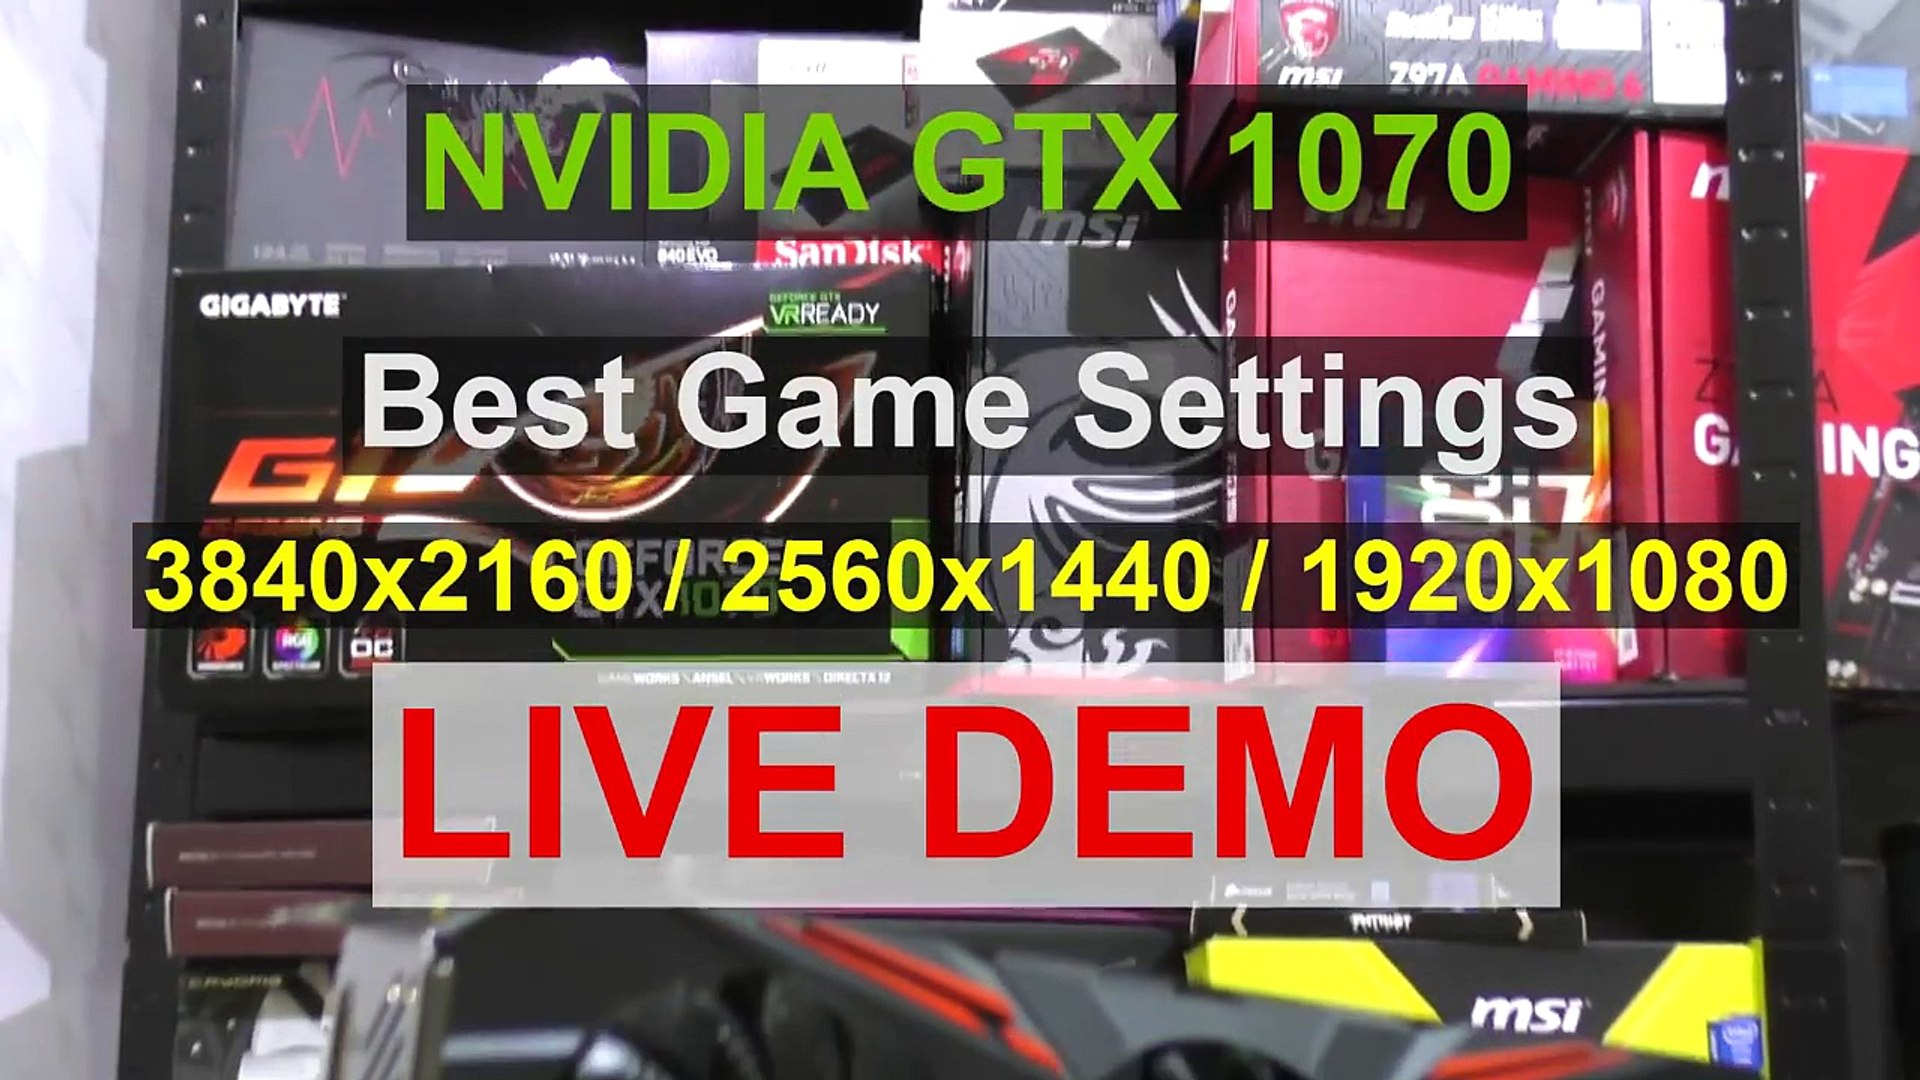 GTX 1070 - Best Game Settings (4K, 1440p, 1080p) - Live Demo